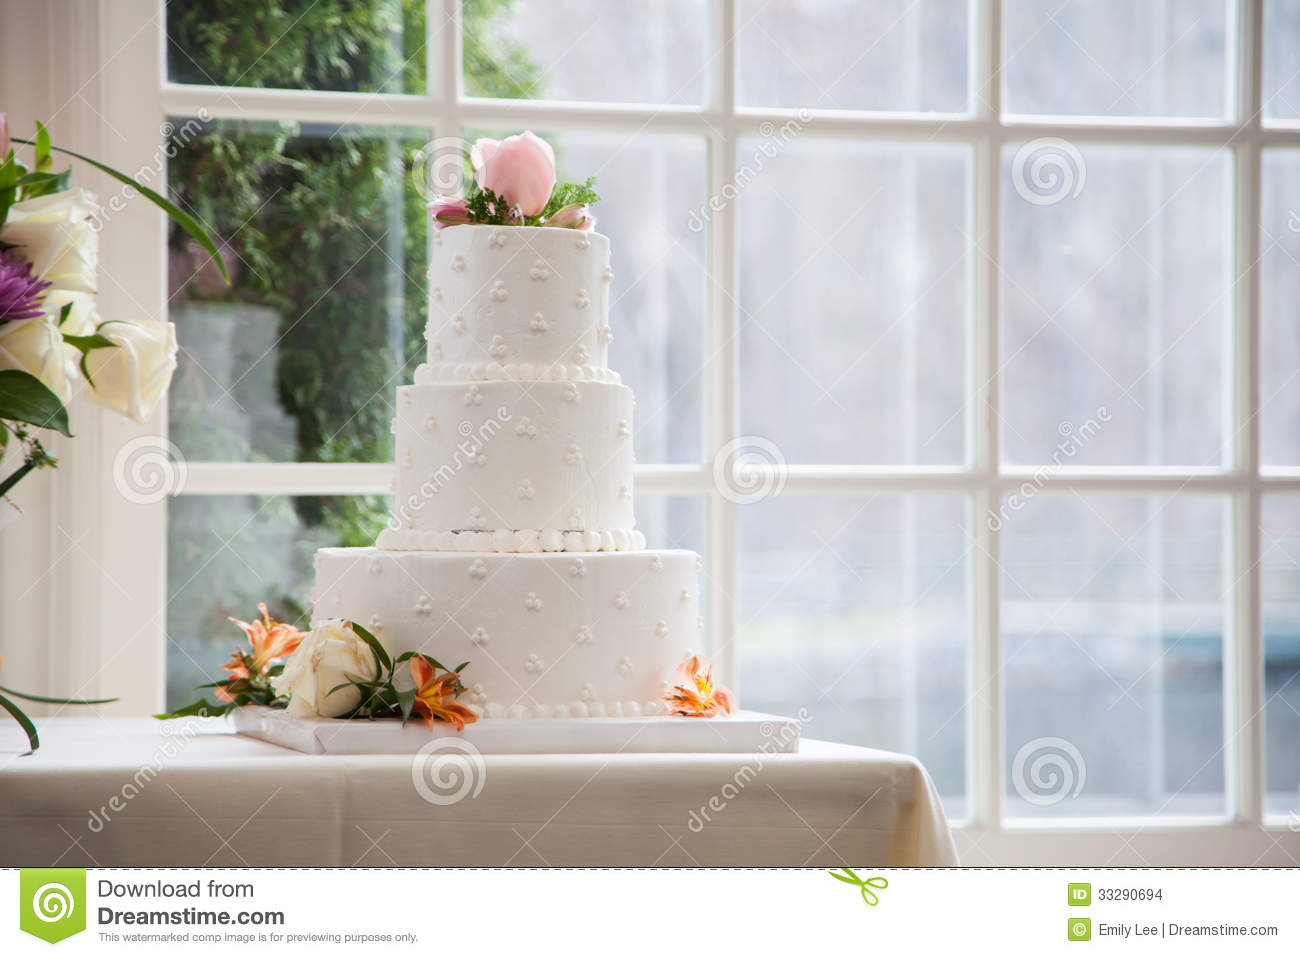 Simple, Elegant Wedding Cake Stock Photo - Image of pastry, circular ...